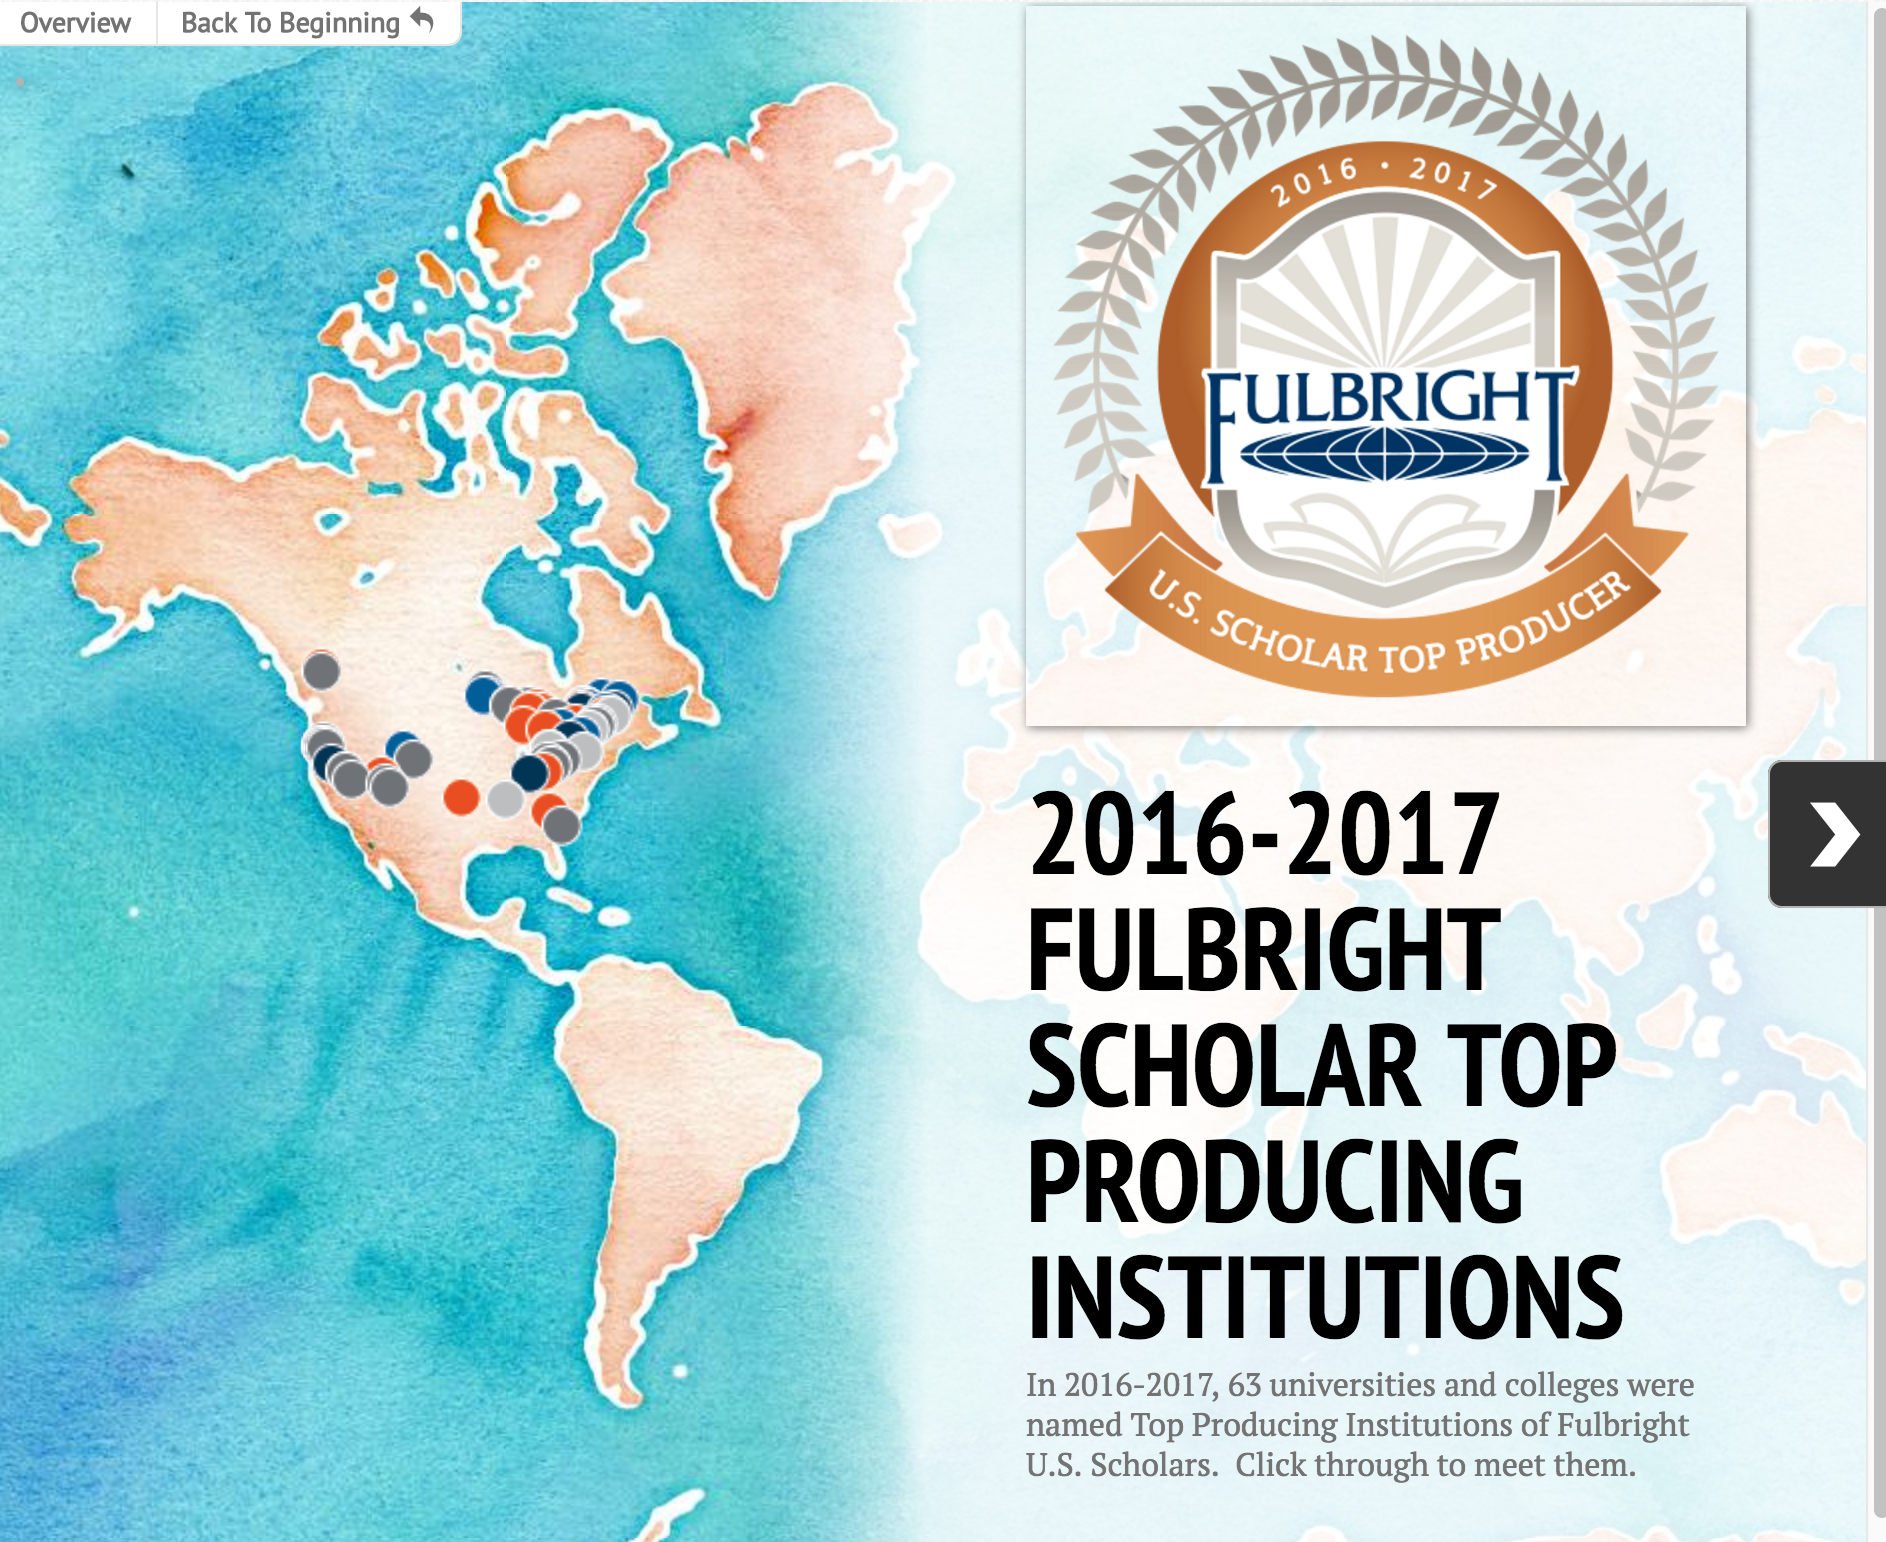 2016-2017 Fulbright Scholar Top Producing Institutions